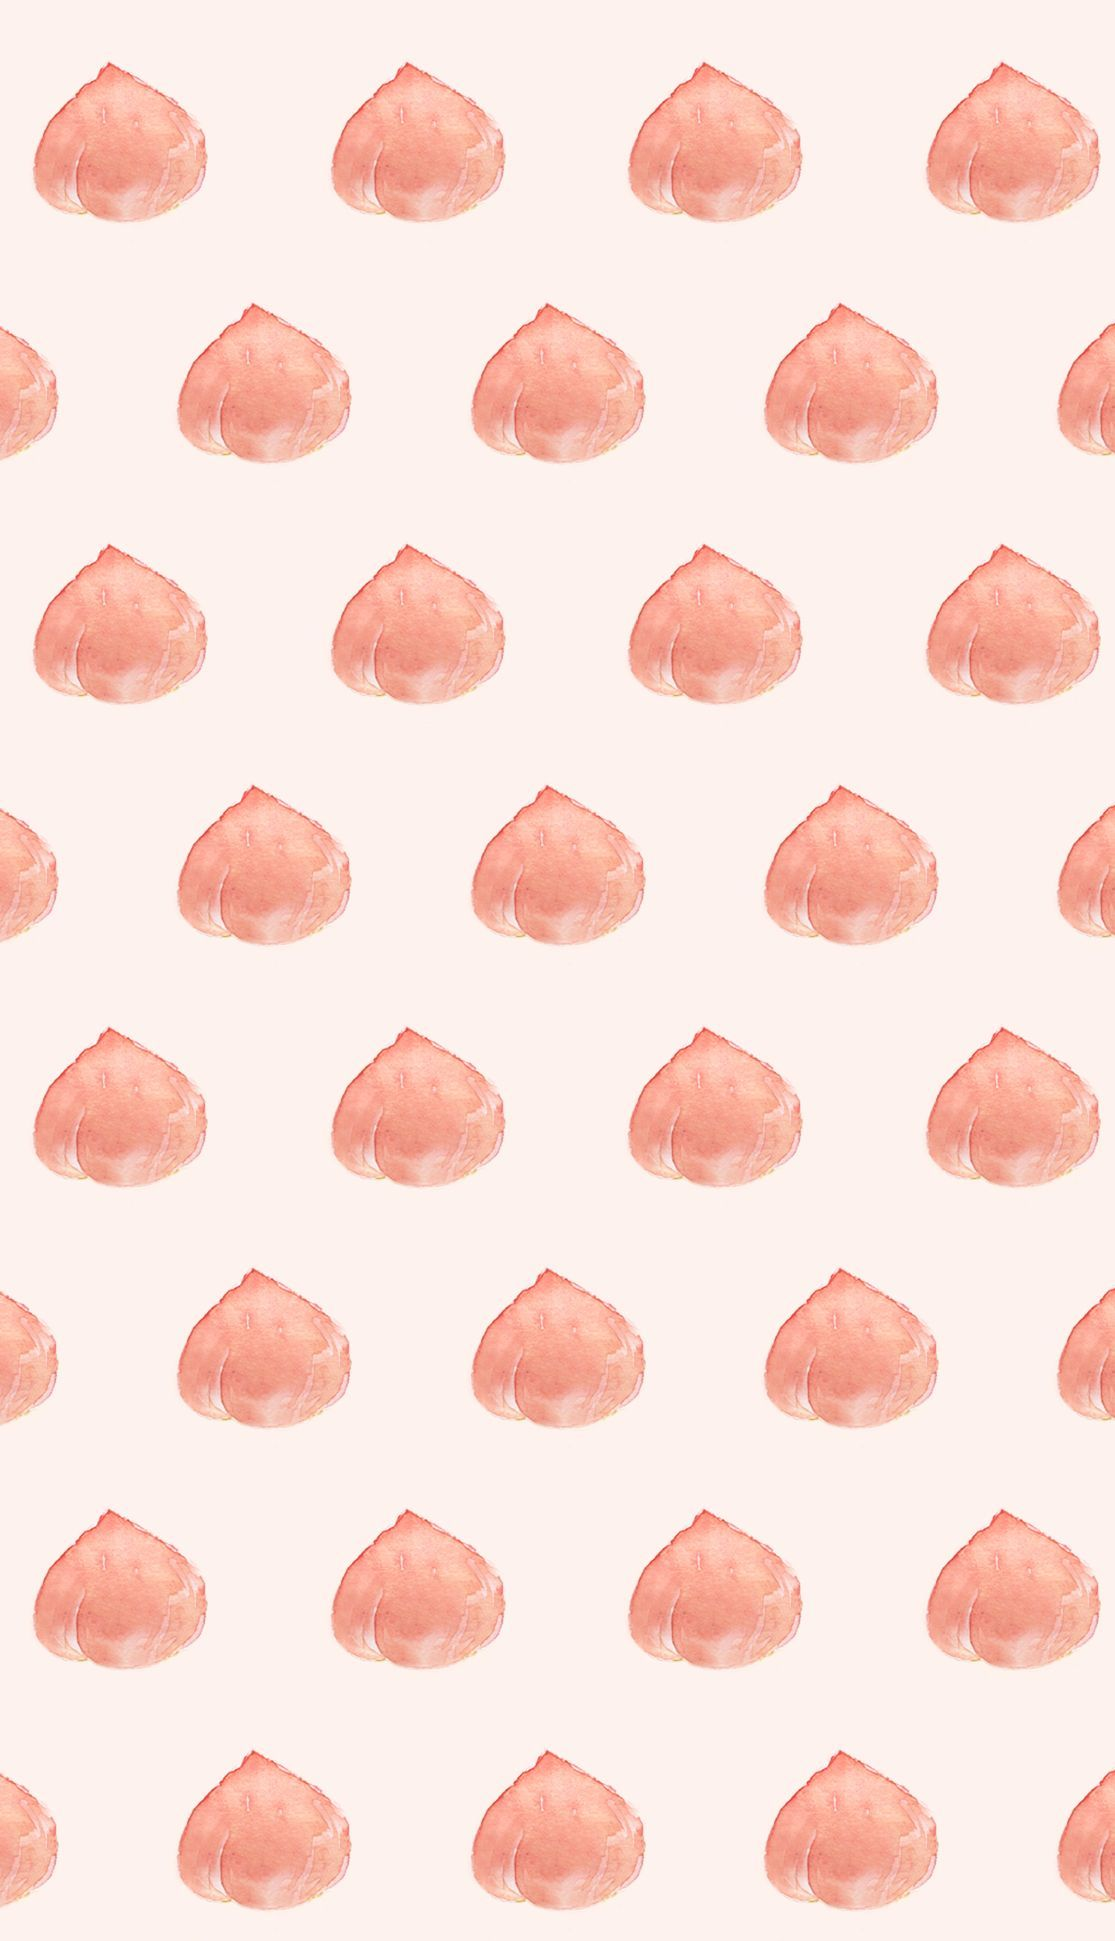 Kawaii Peach Wallpapers Top Free Kawaii Peach Backgrounds